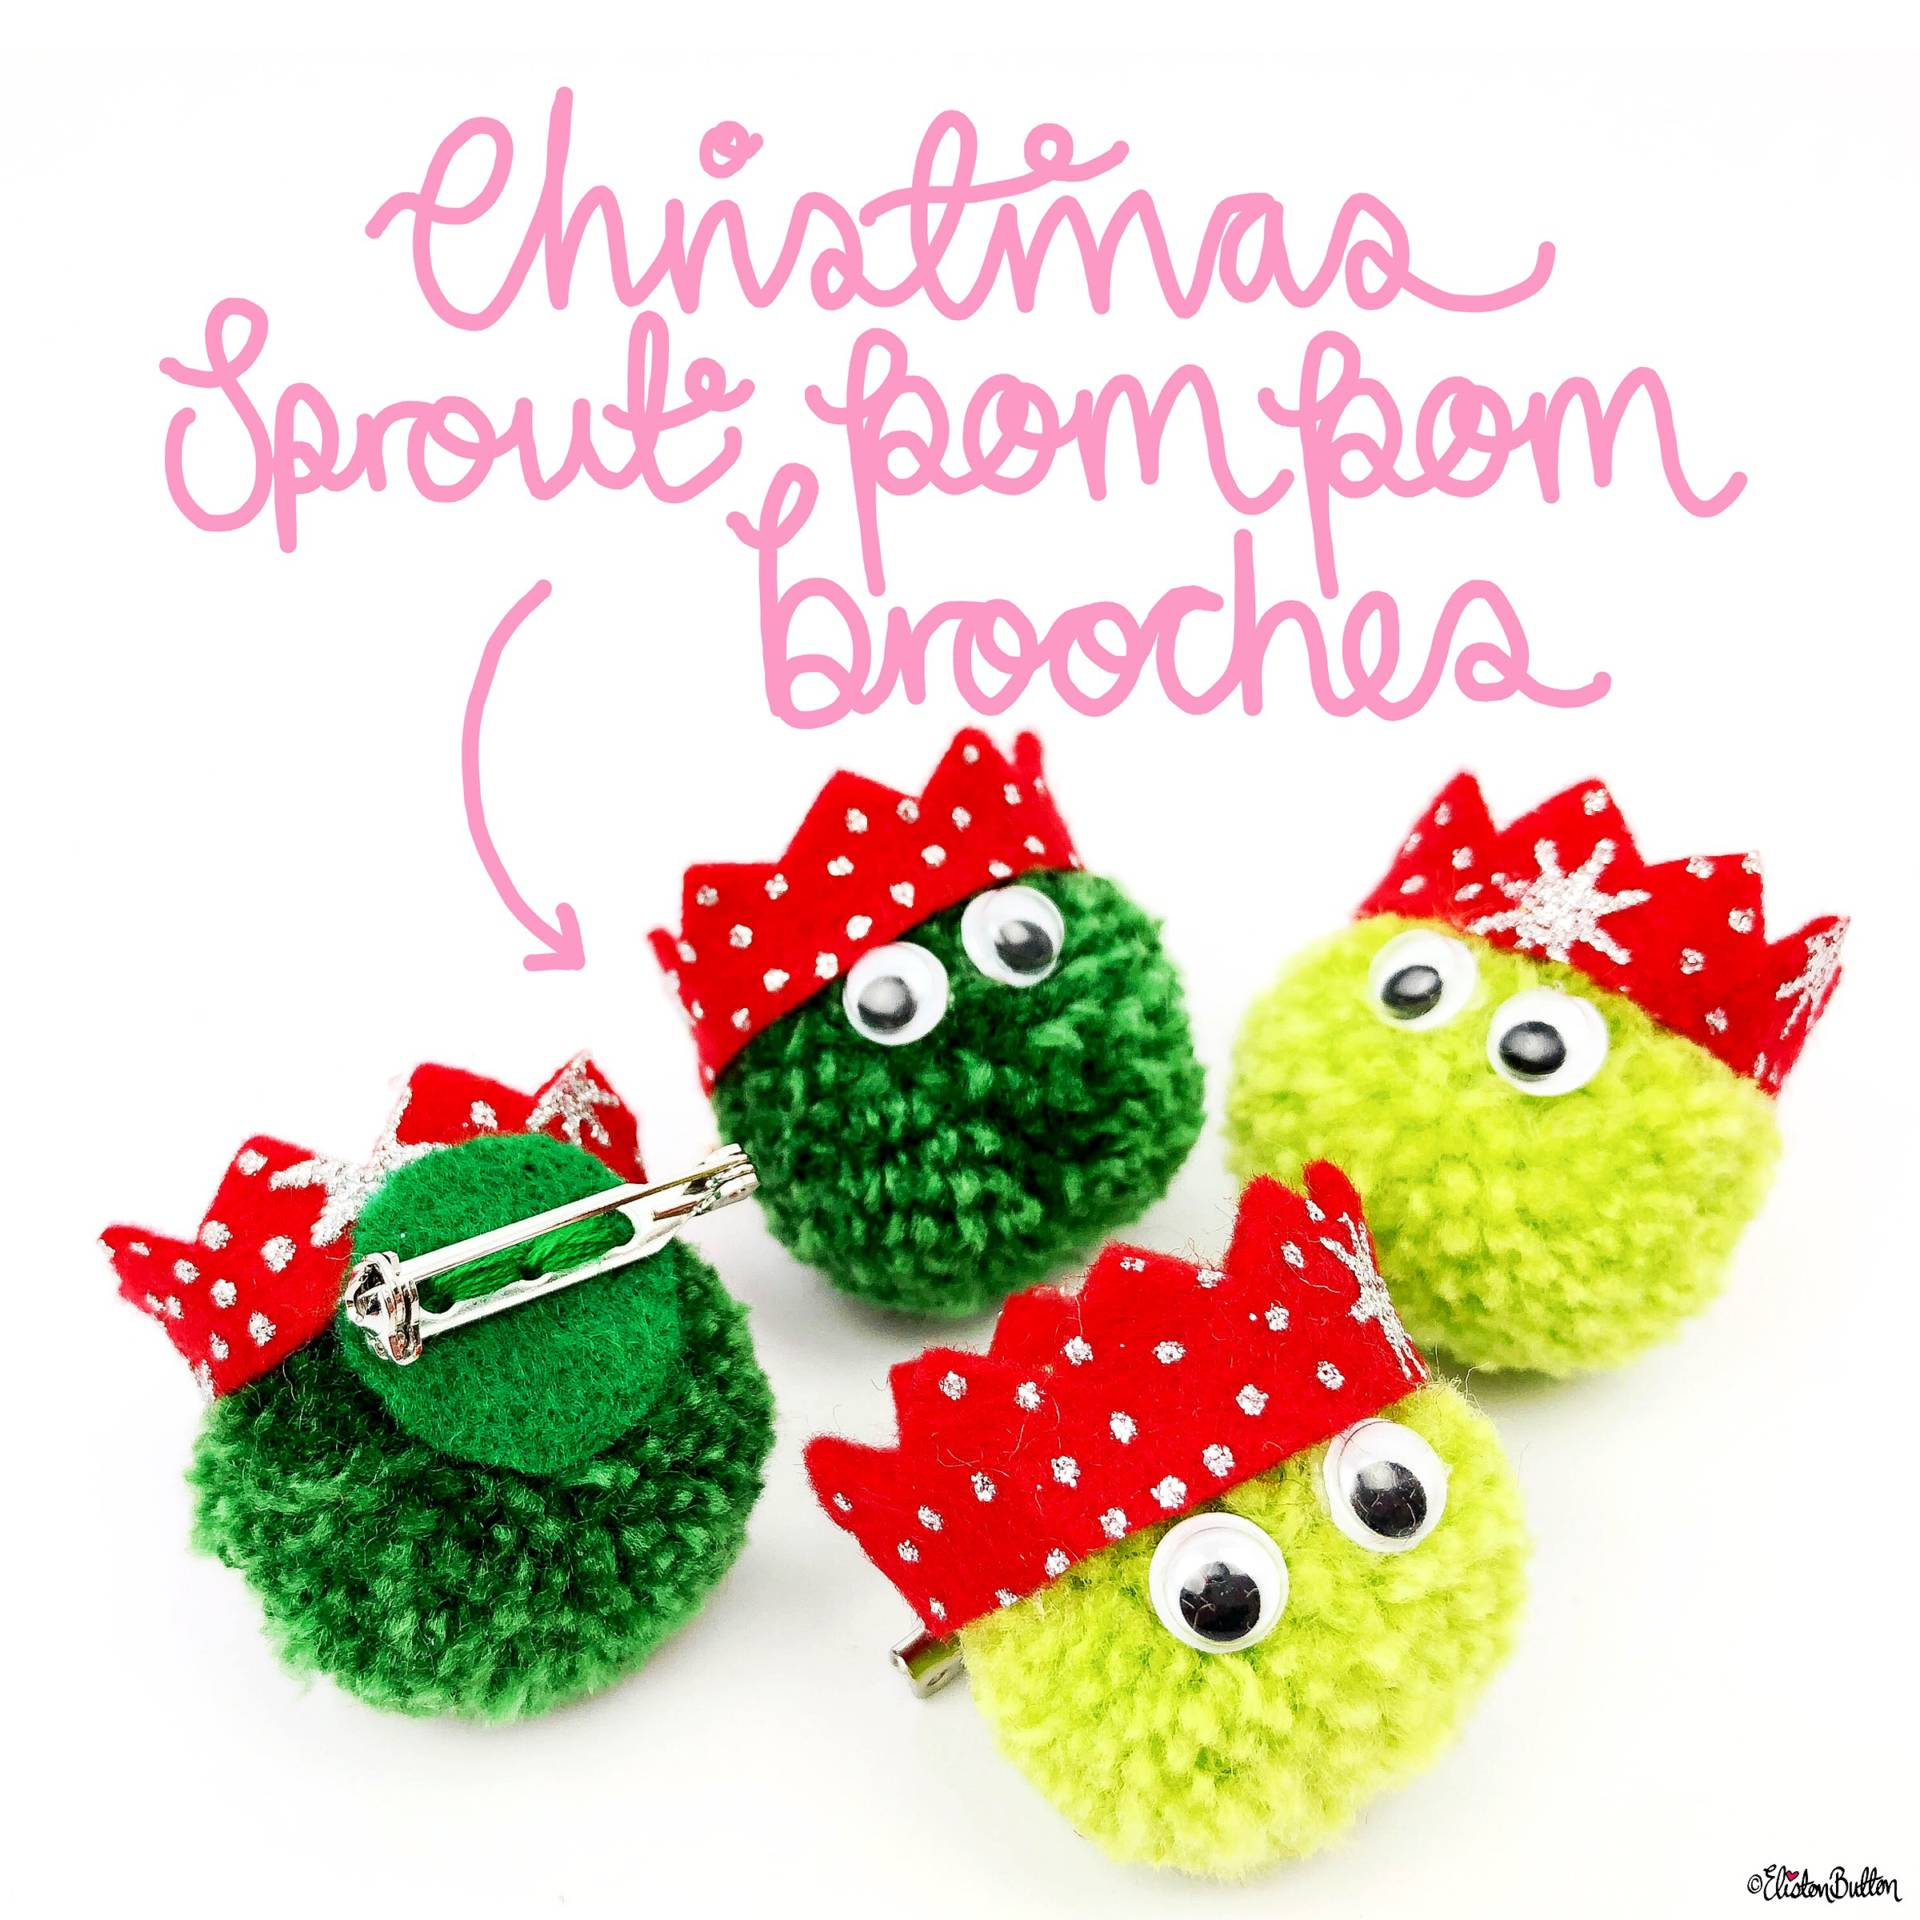 Christmas Sprout Pom Pom Brooches by Eliston Button - For the Love of…Christmas at www.elistonbutton.com - Eliston Button - That Crafty Kid – Art, Design, Craft & Adventure.